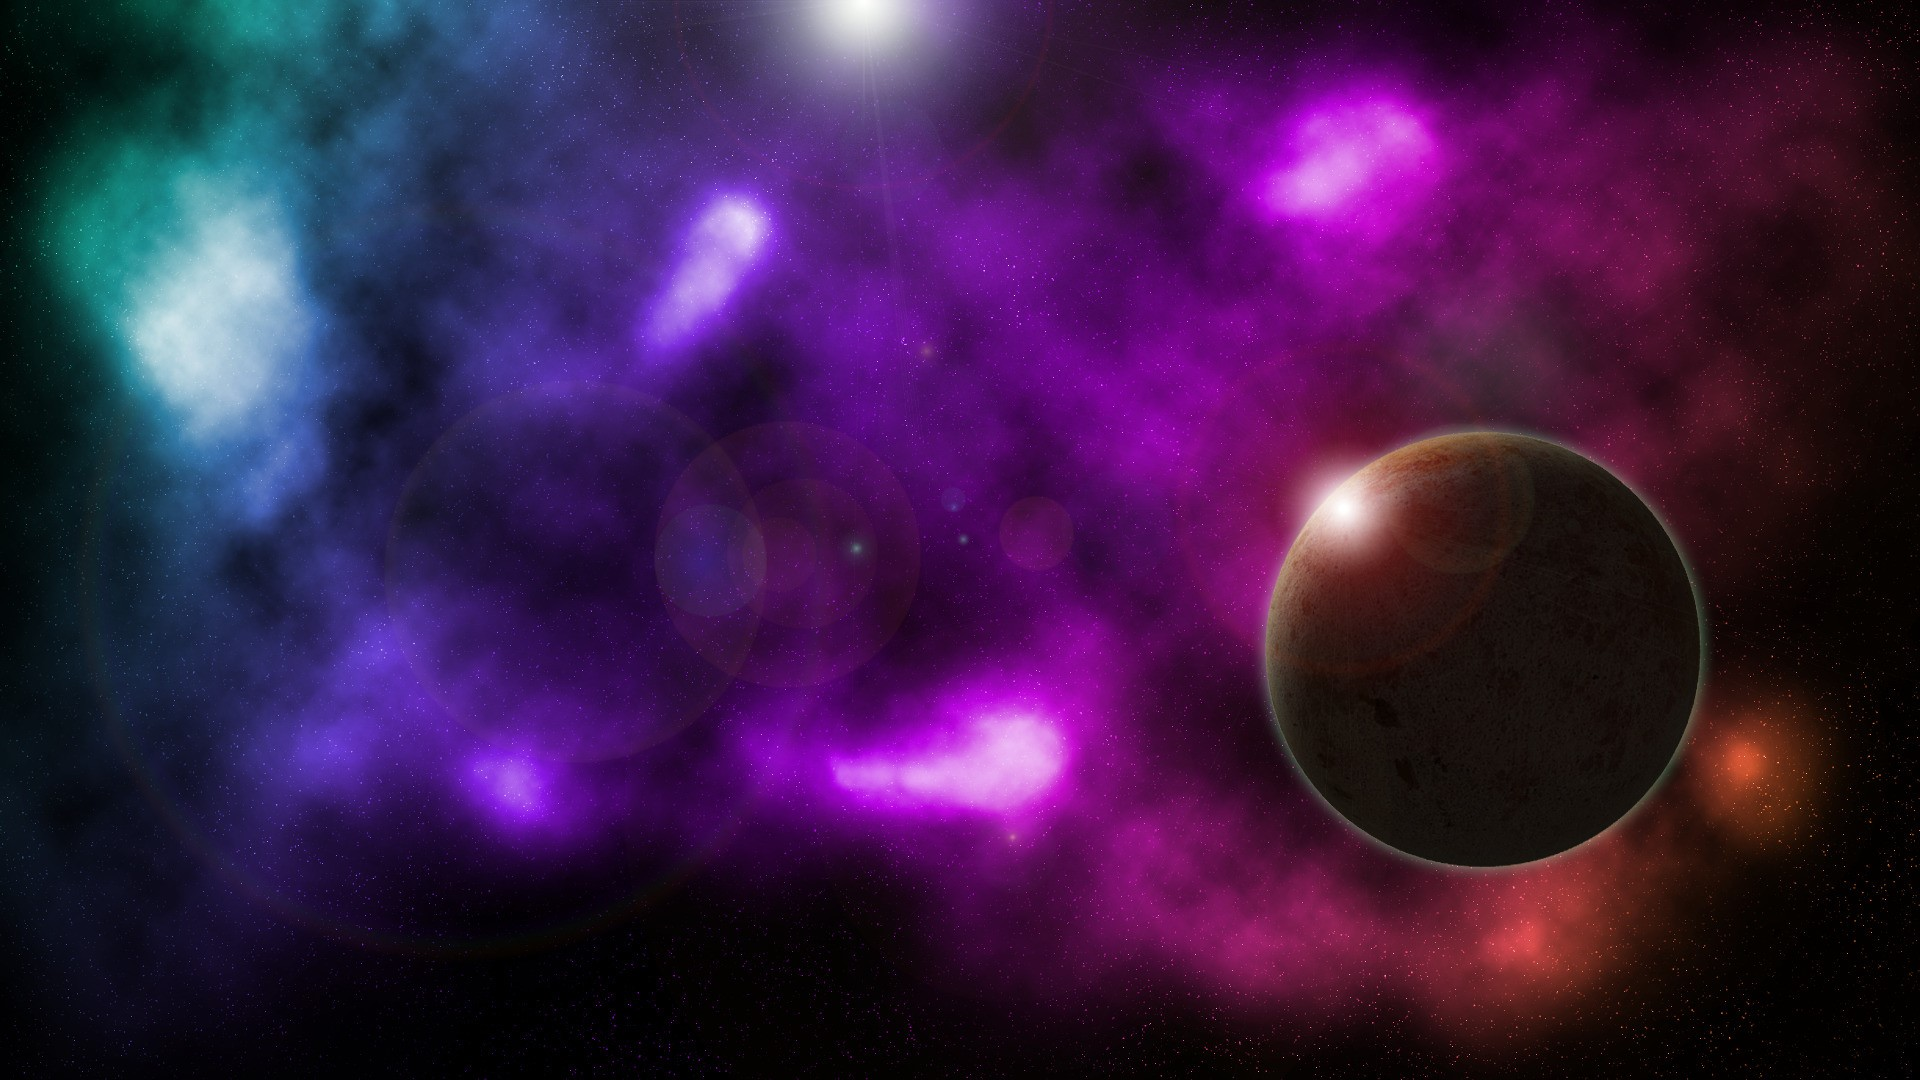 Space Planet Nebula Deep Space Wallpaper And Background - Outer Space , HD Wallpaper & Backgrounds